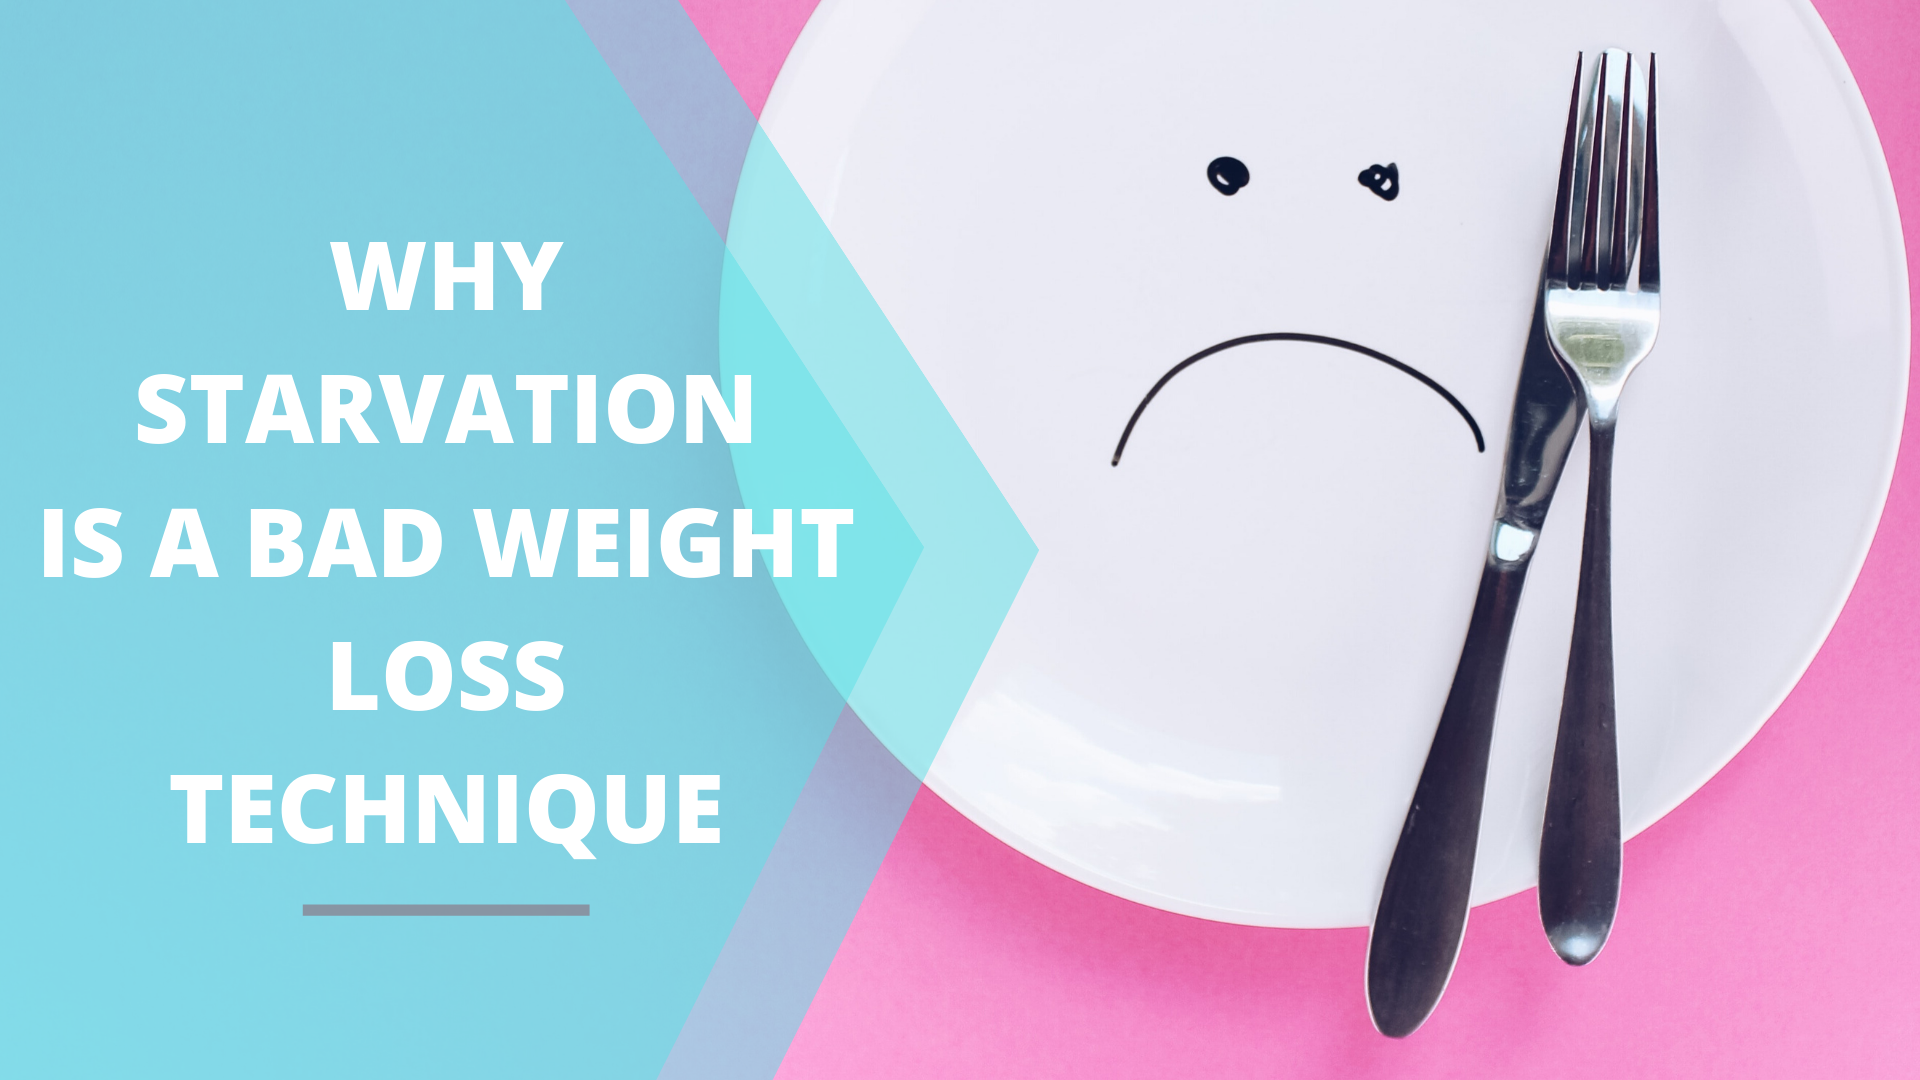 Why Starvation Is A Bad Weight Loss Technique